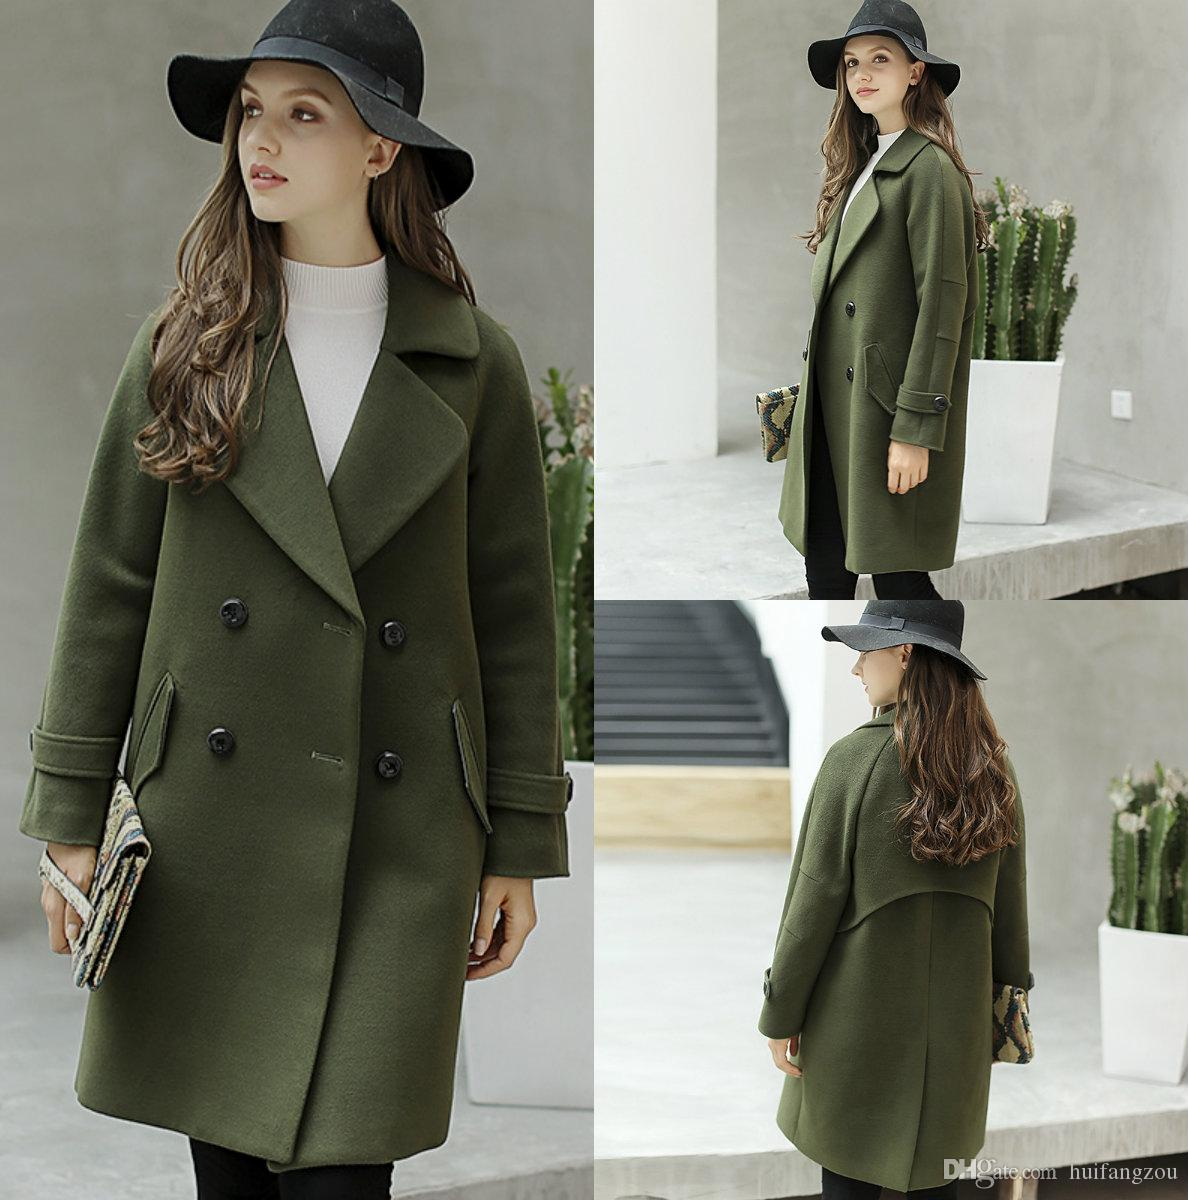 2019 Wholesale Women Wool Winter Coats Hunter Green Warm Jackets Blends Polo Neckline Cold Protection Down For From Huifangzou